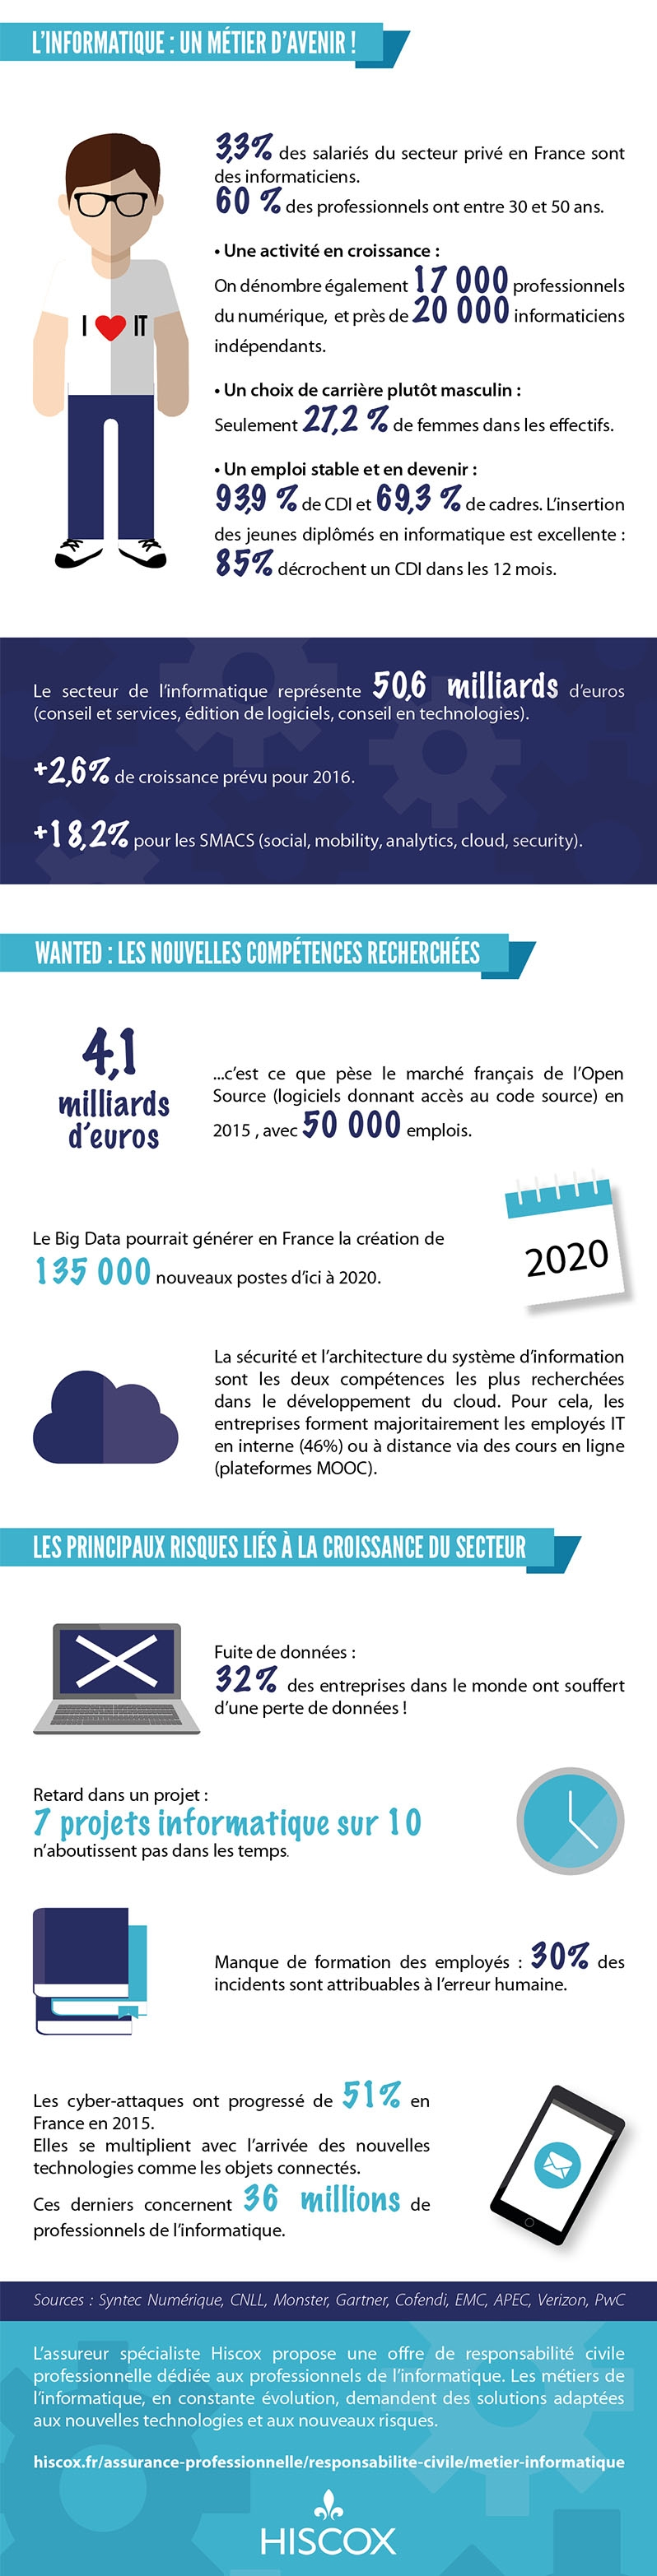 INFOGRAPHIE_entrepreneurs_informatique_it